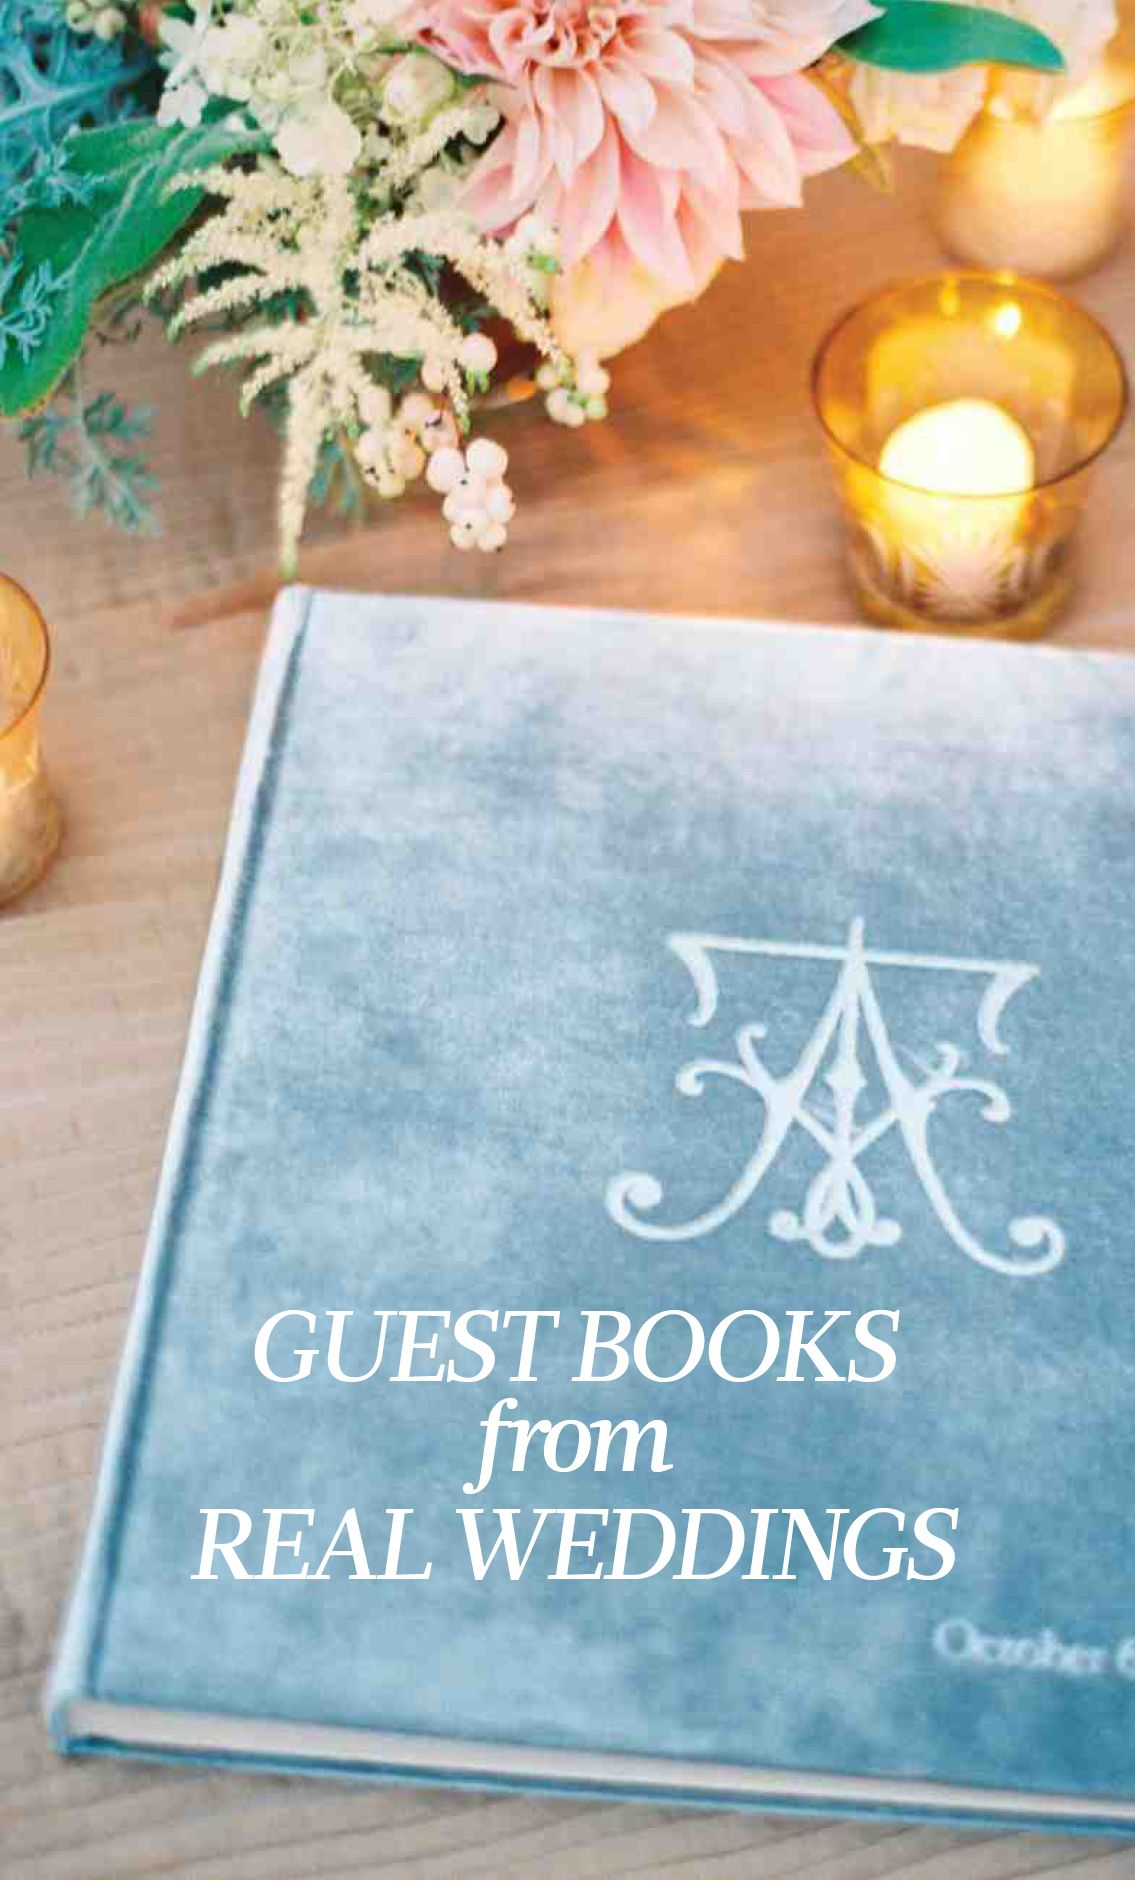 46 Guest Books from Real Weddings Wedding planner office